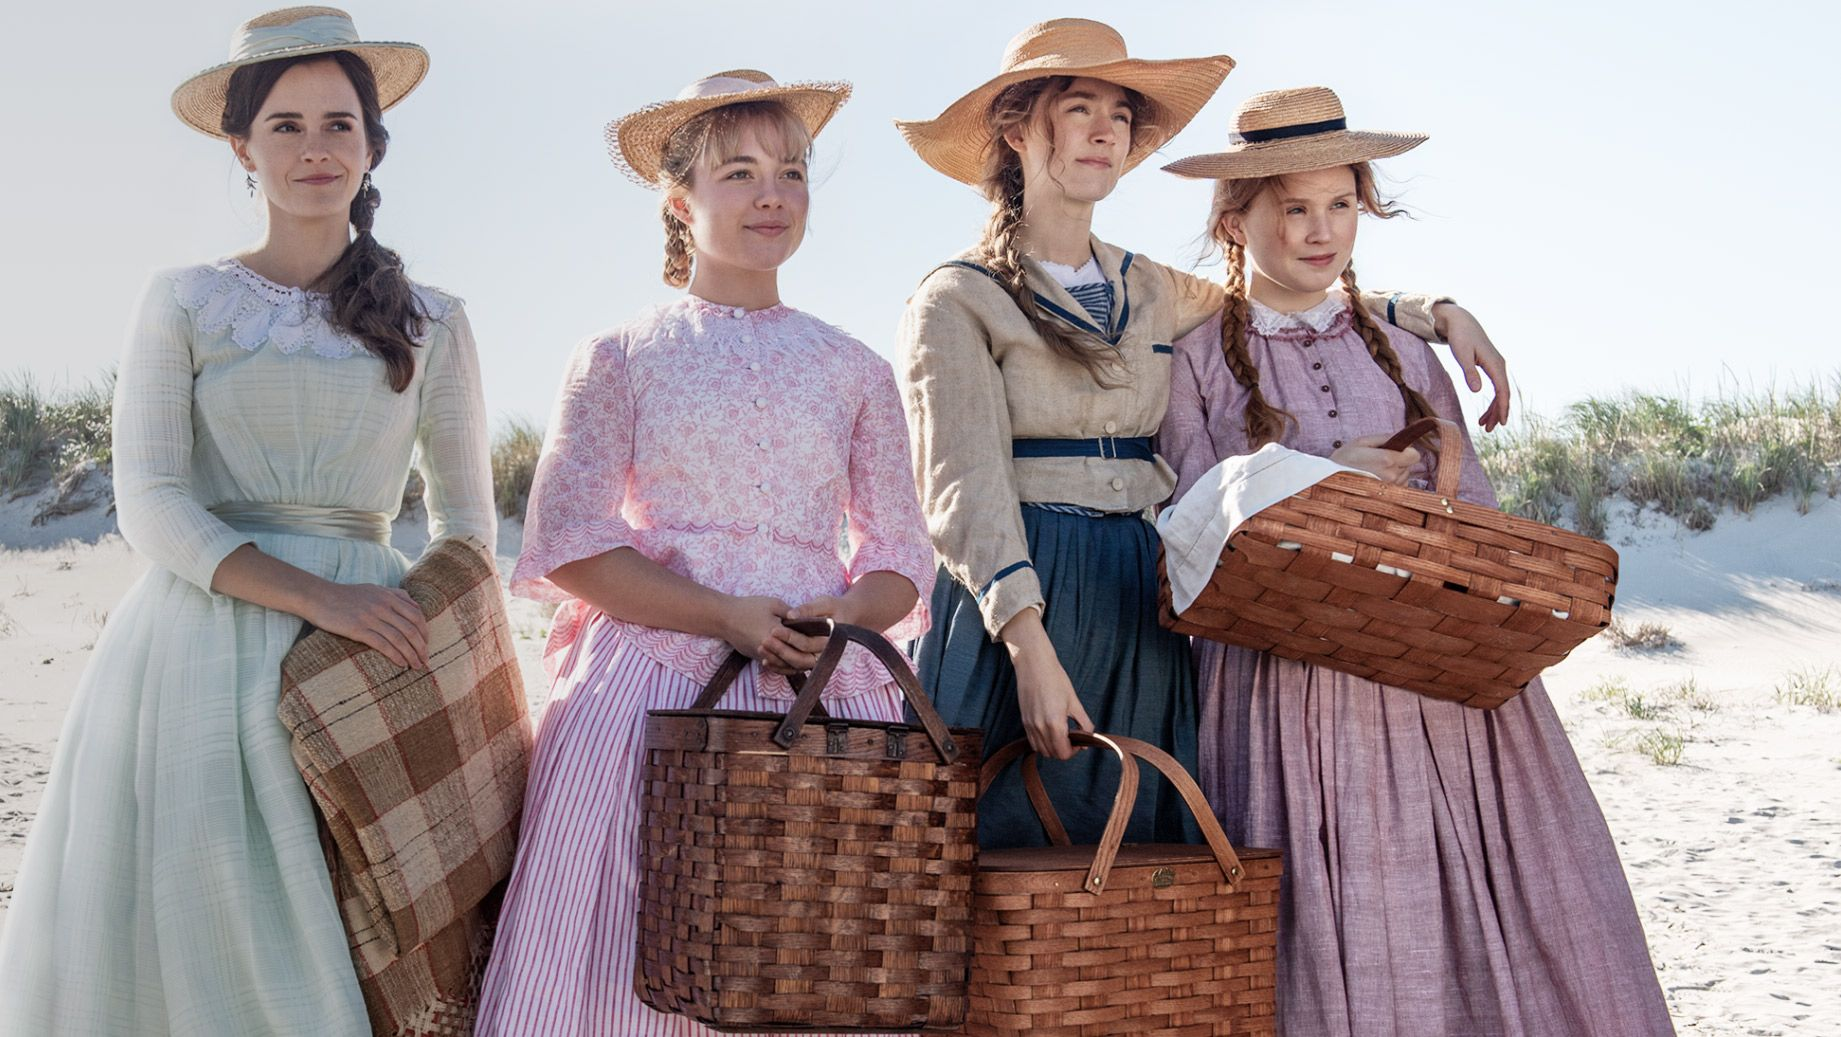 'Little Women' Review: Greta Gerwig Marries Tradition With Meta Modernity in Stunning Adaptation